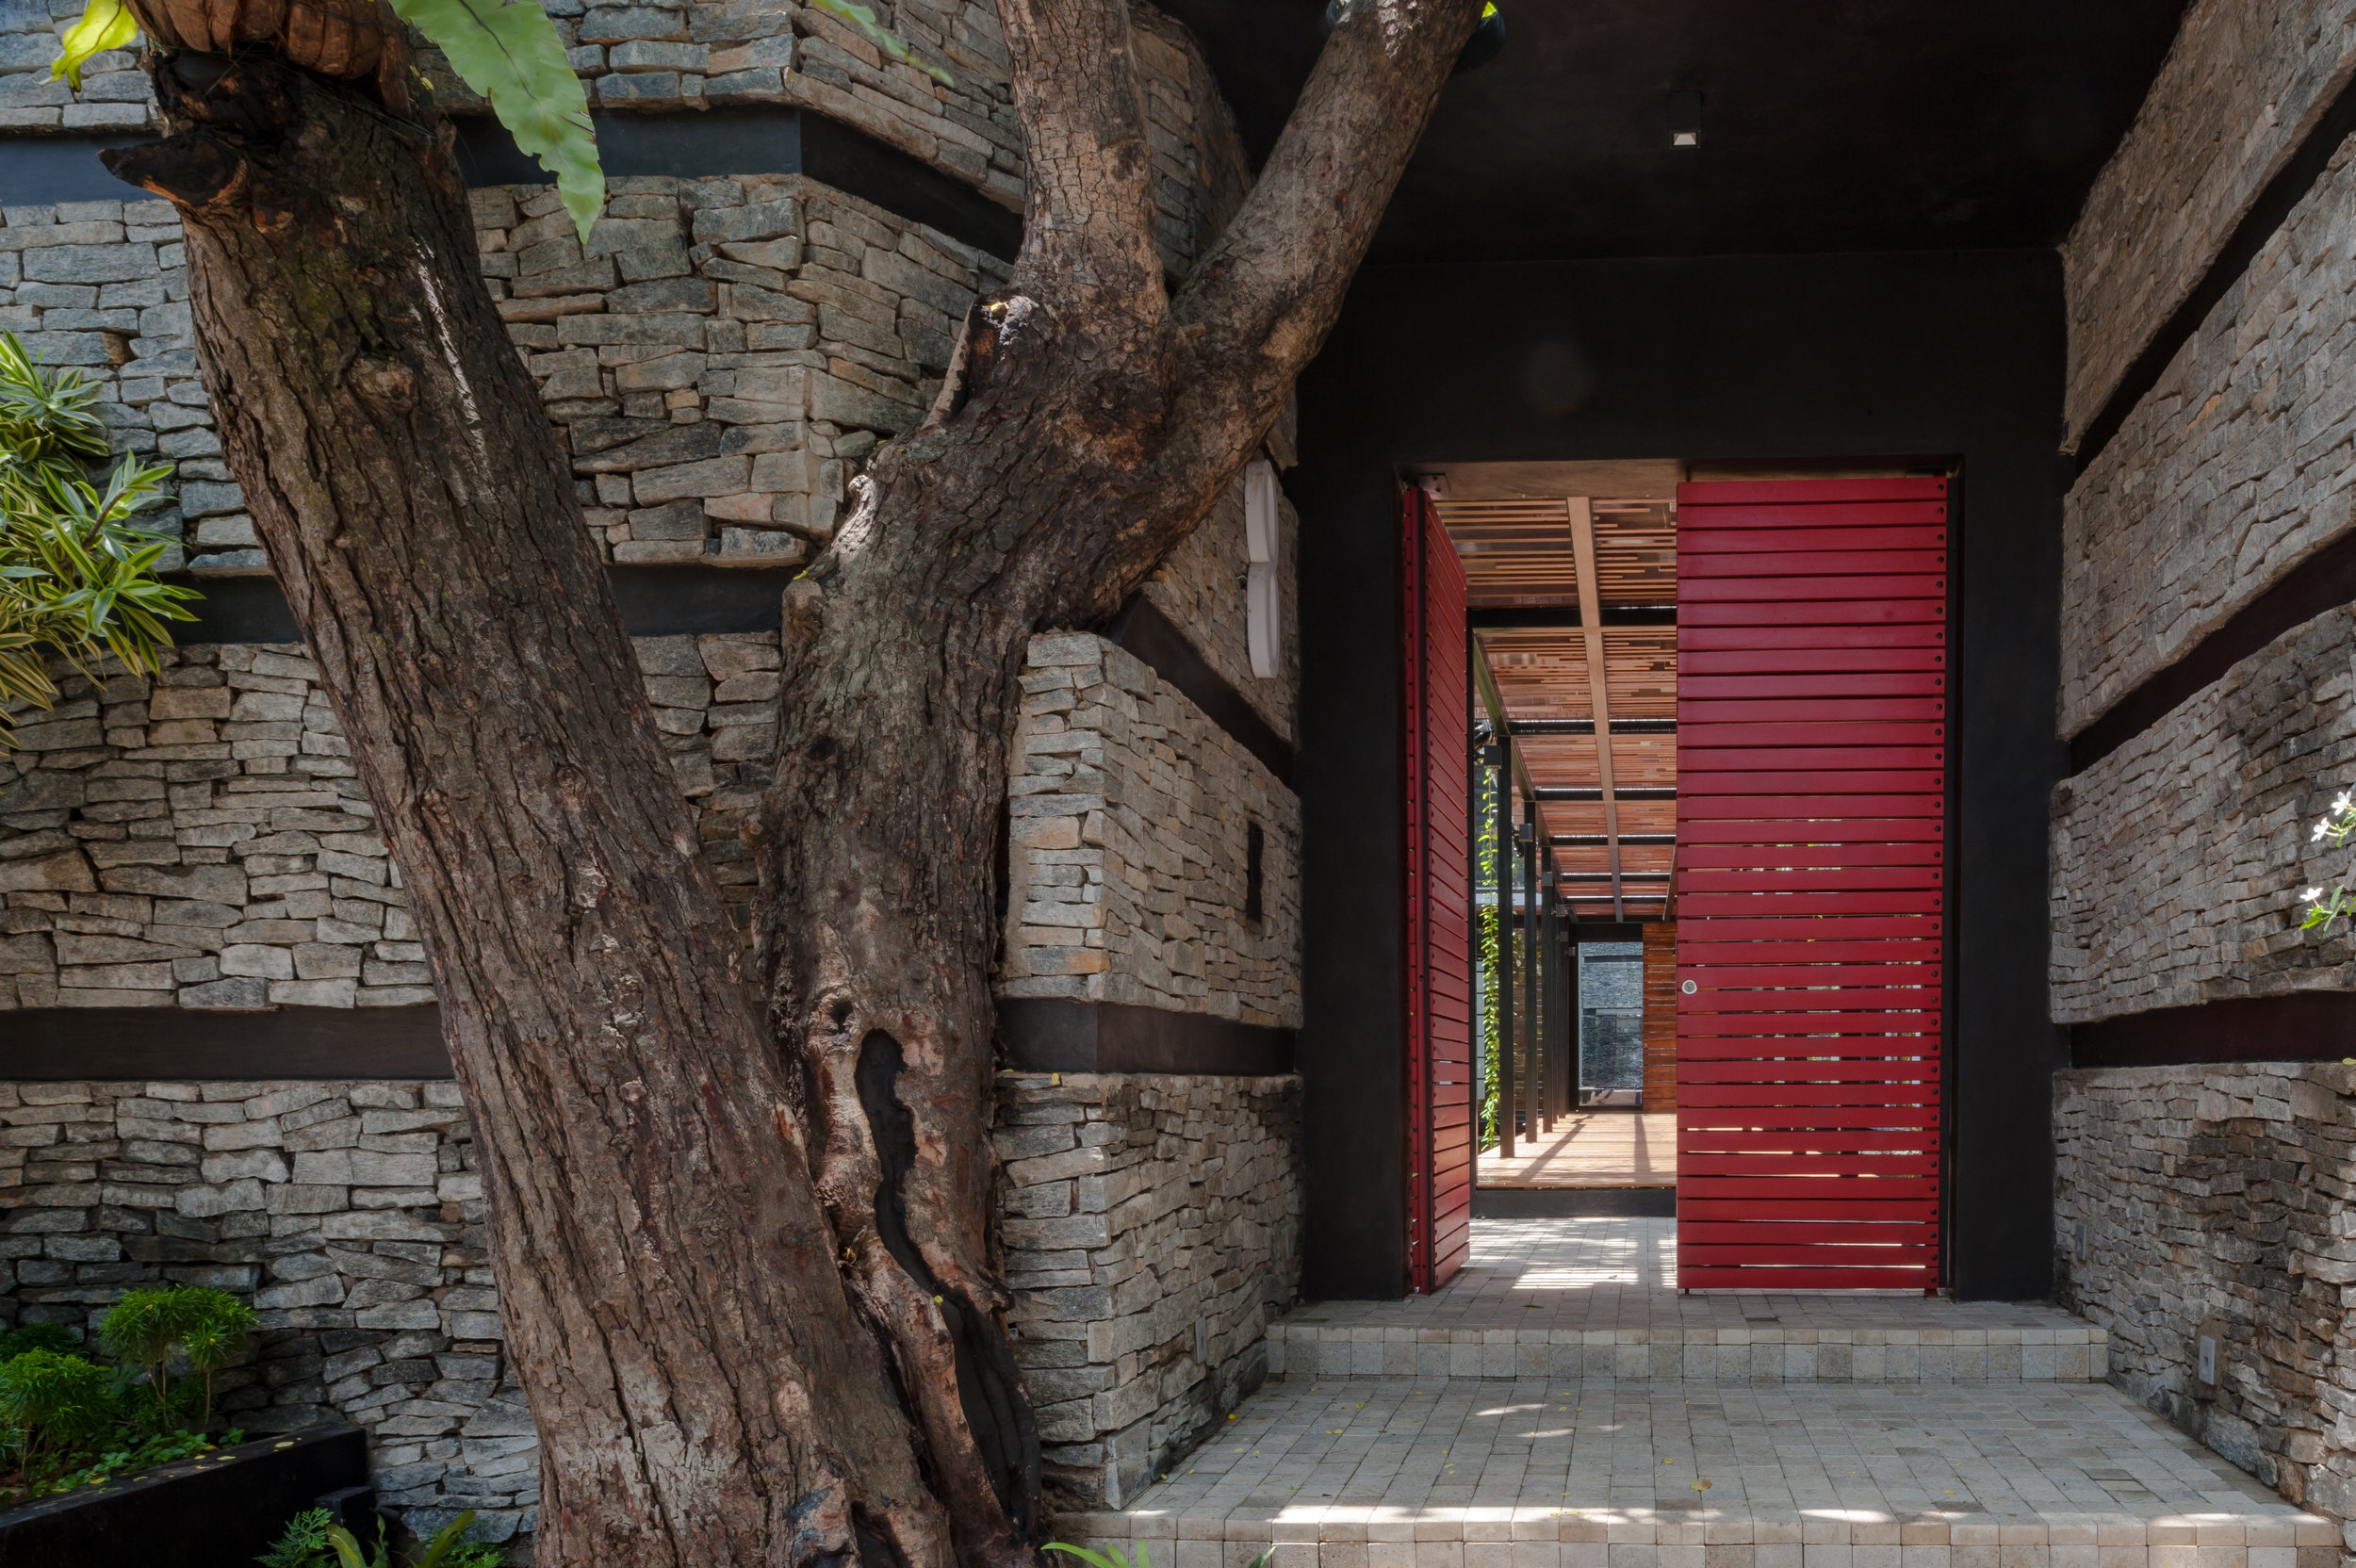 House No. 8 - the entry door